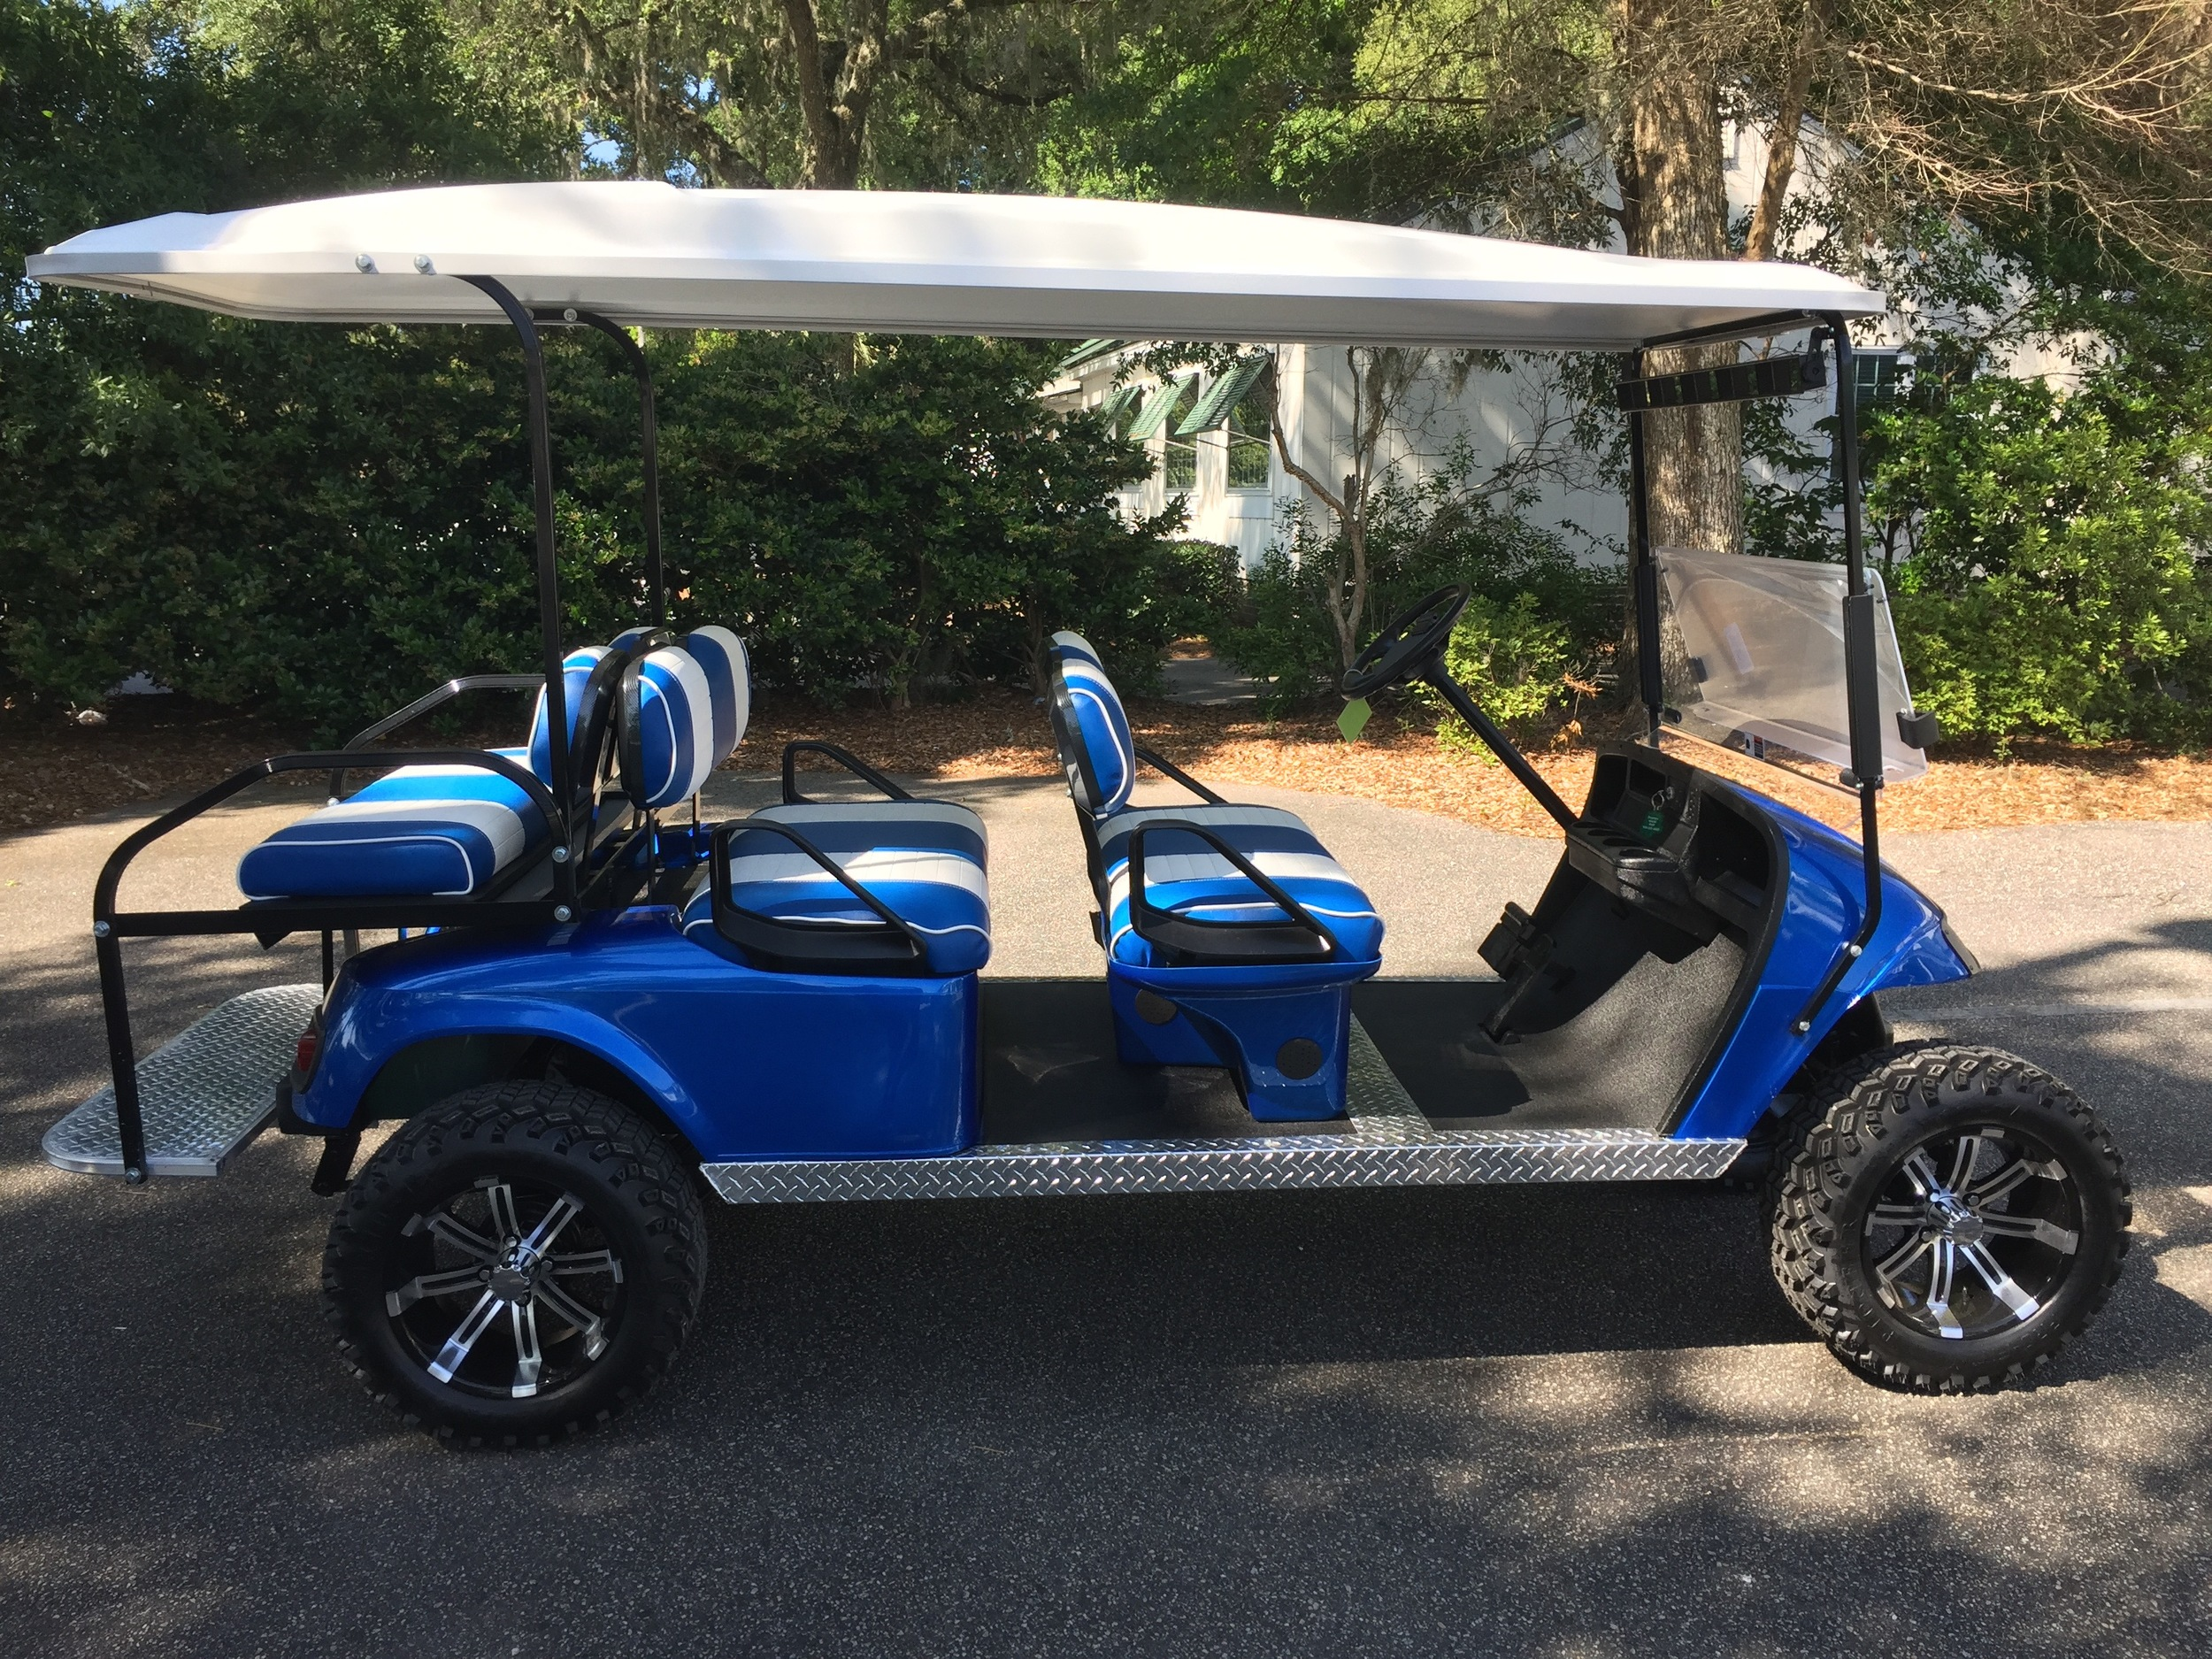 2016 Viper Blue EZGO Lifted Trolley ——- In Stock  Blue/white seats, white top, new 2019 batteries (6-8vt), high speed code, LED lights, Backlash (23x10x14) tires, state of charge meter, mirror, and flip windshield